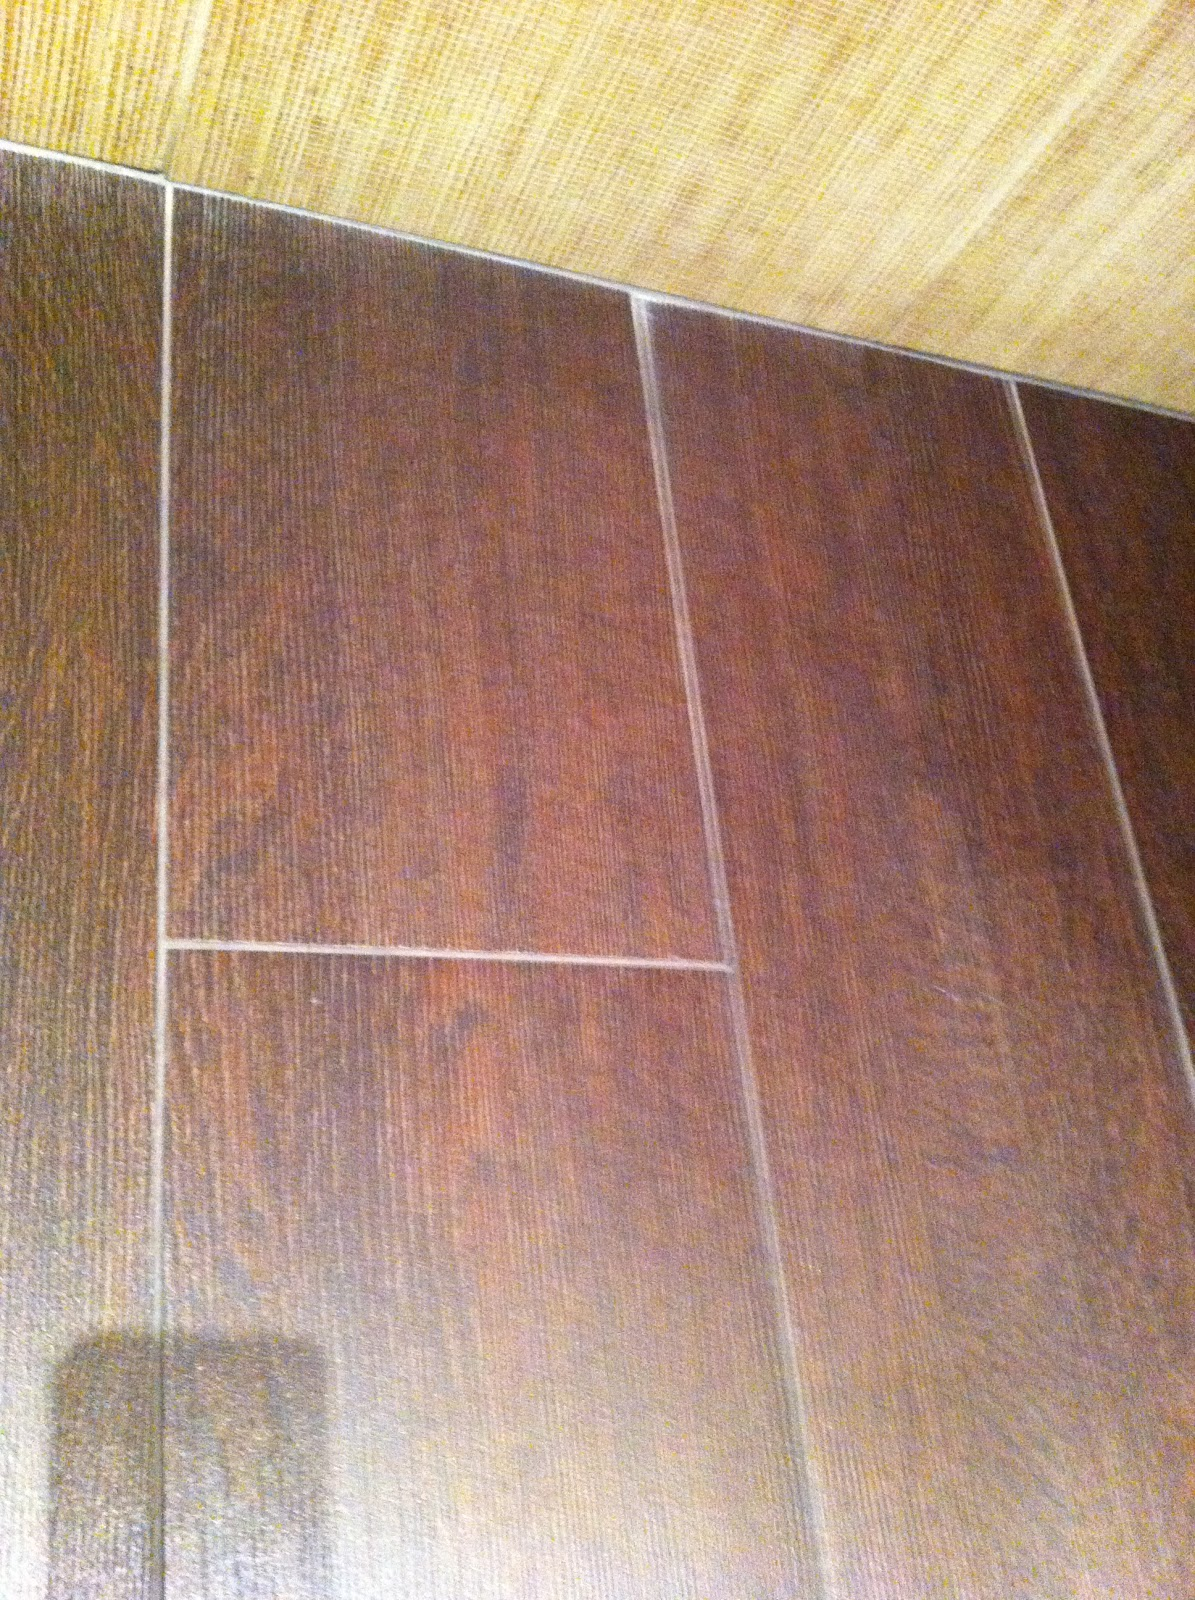 Faux wood flooring crowdbuild for for Faux wood flooring